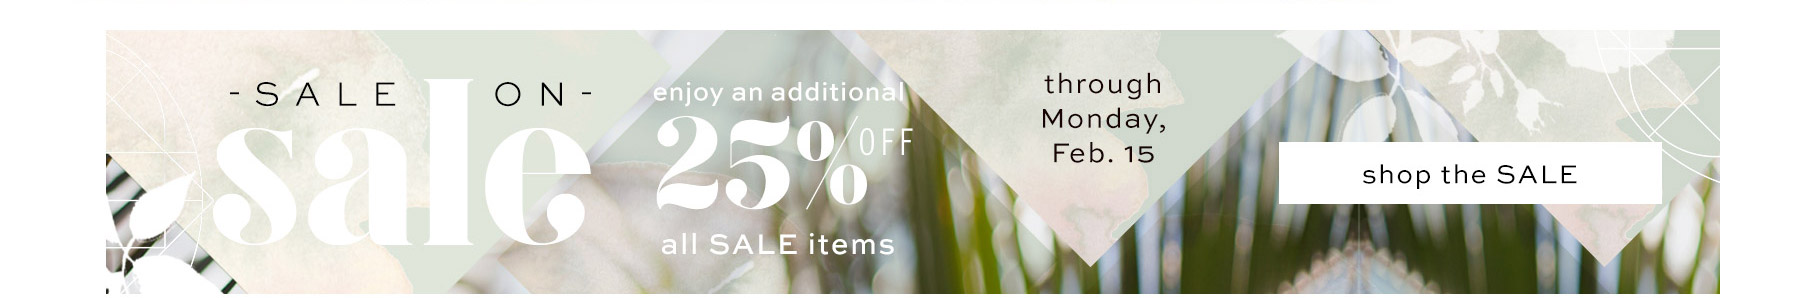 Shop Sale On Sale at Free People